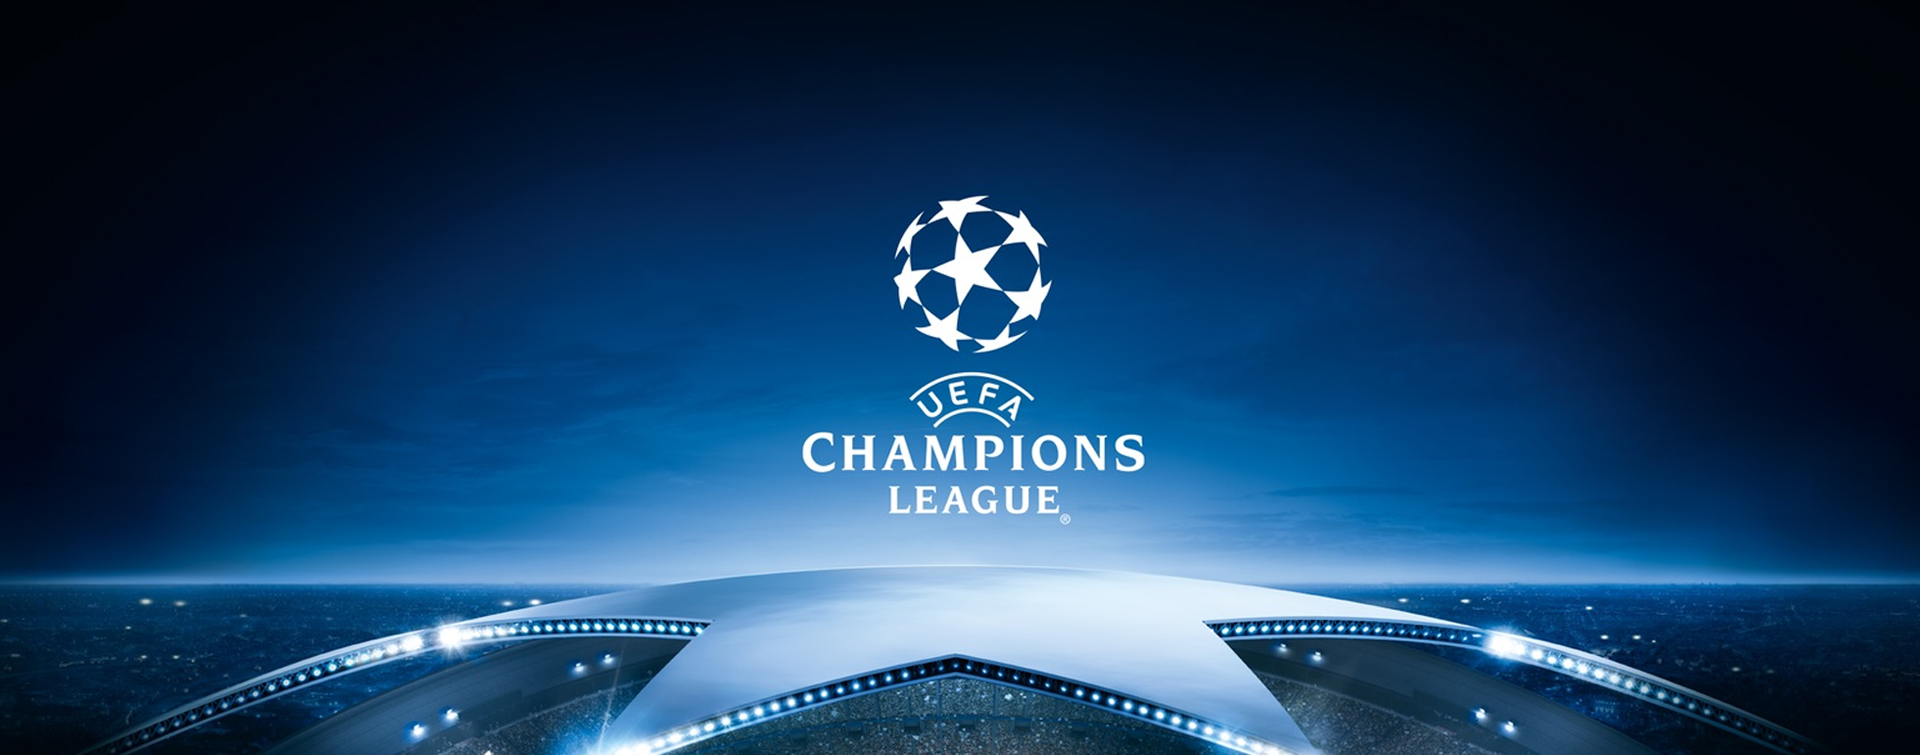 Champions-league-header